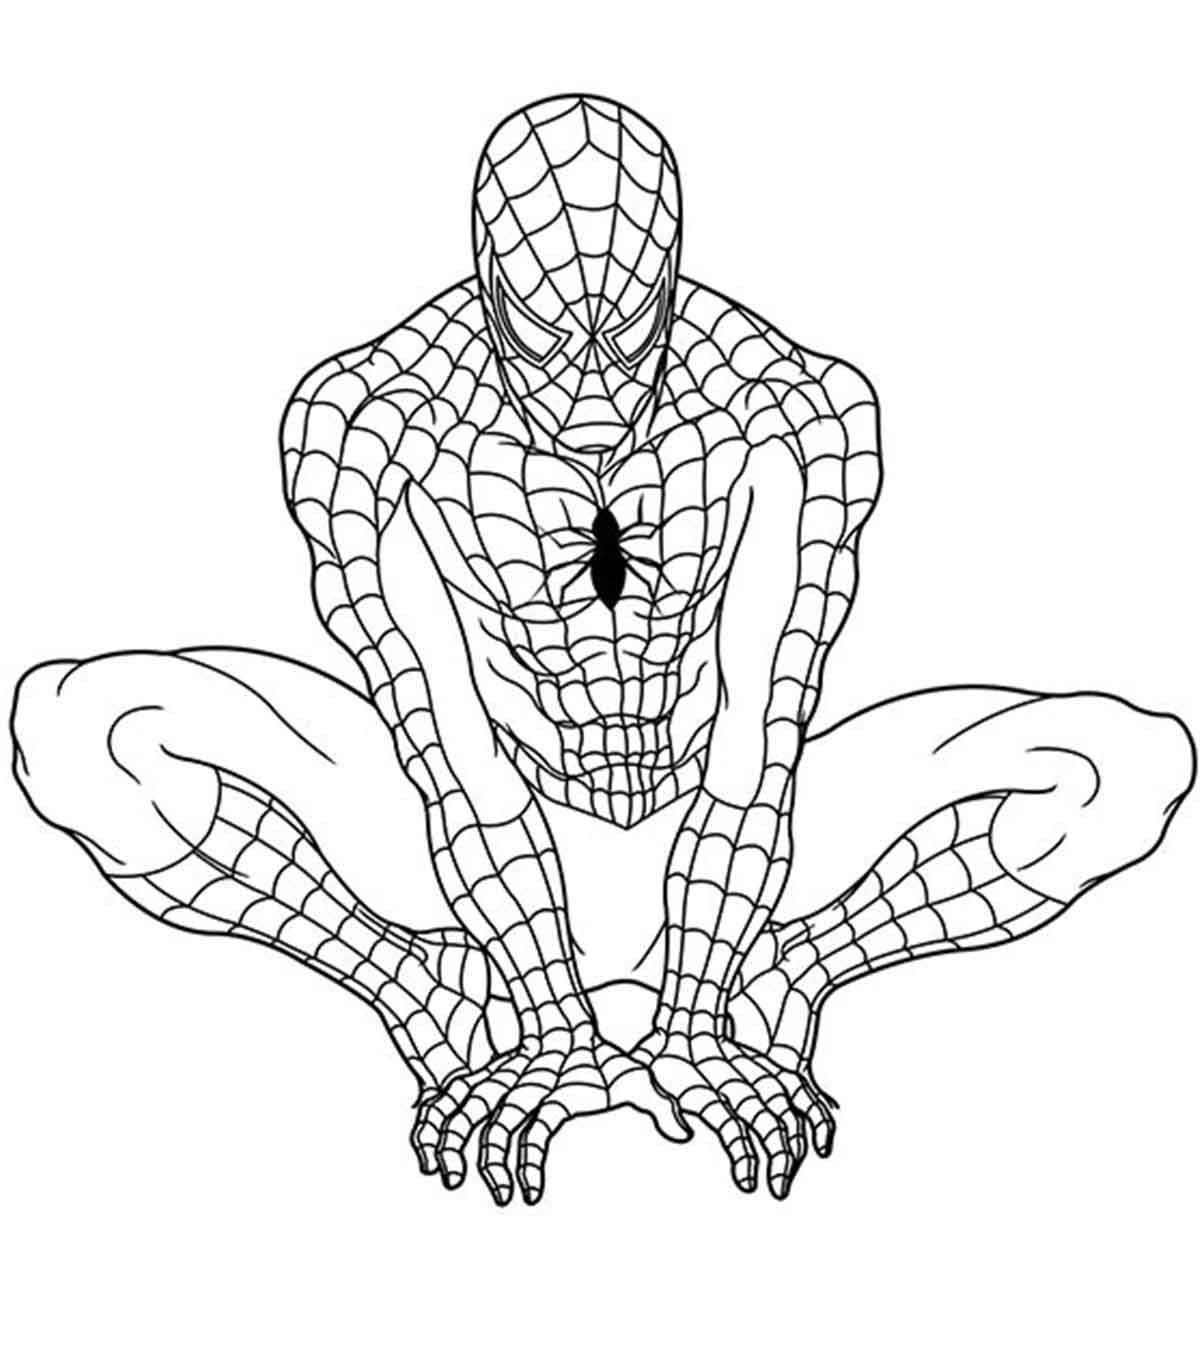 coloring pages superhero superhero coloring pages to download and print for free pages coloring superhero 1 1